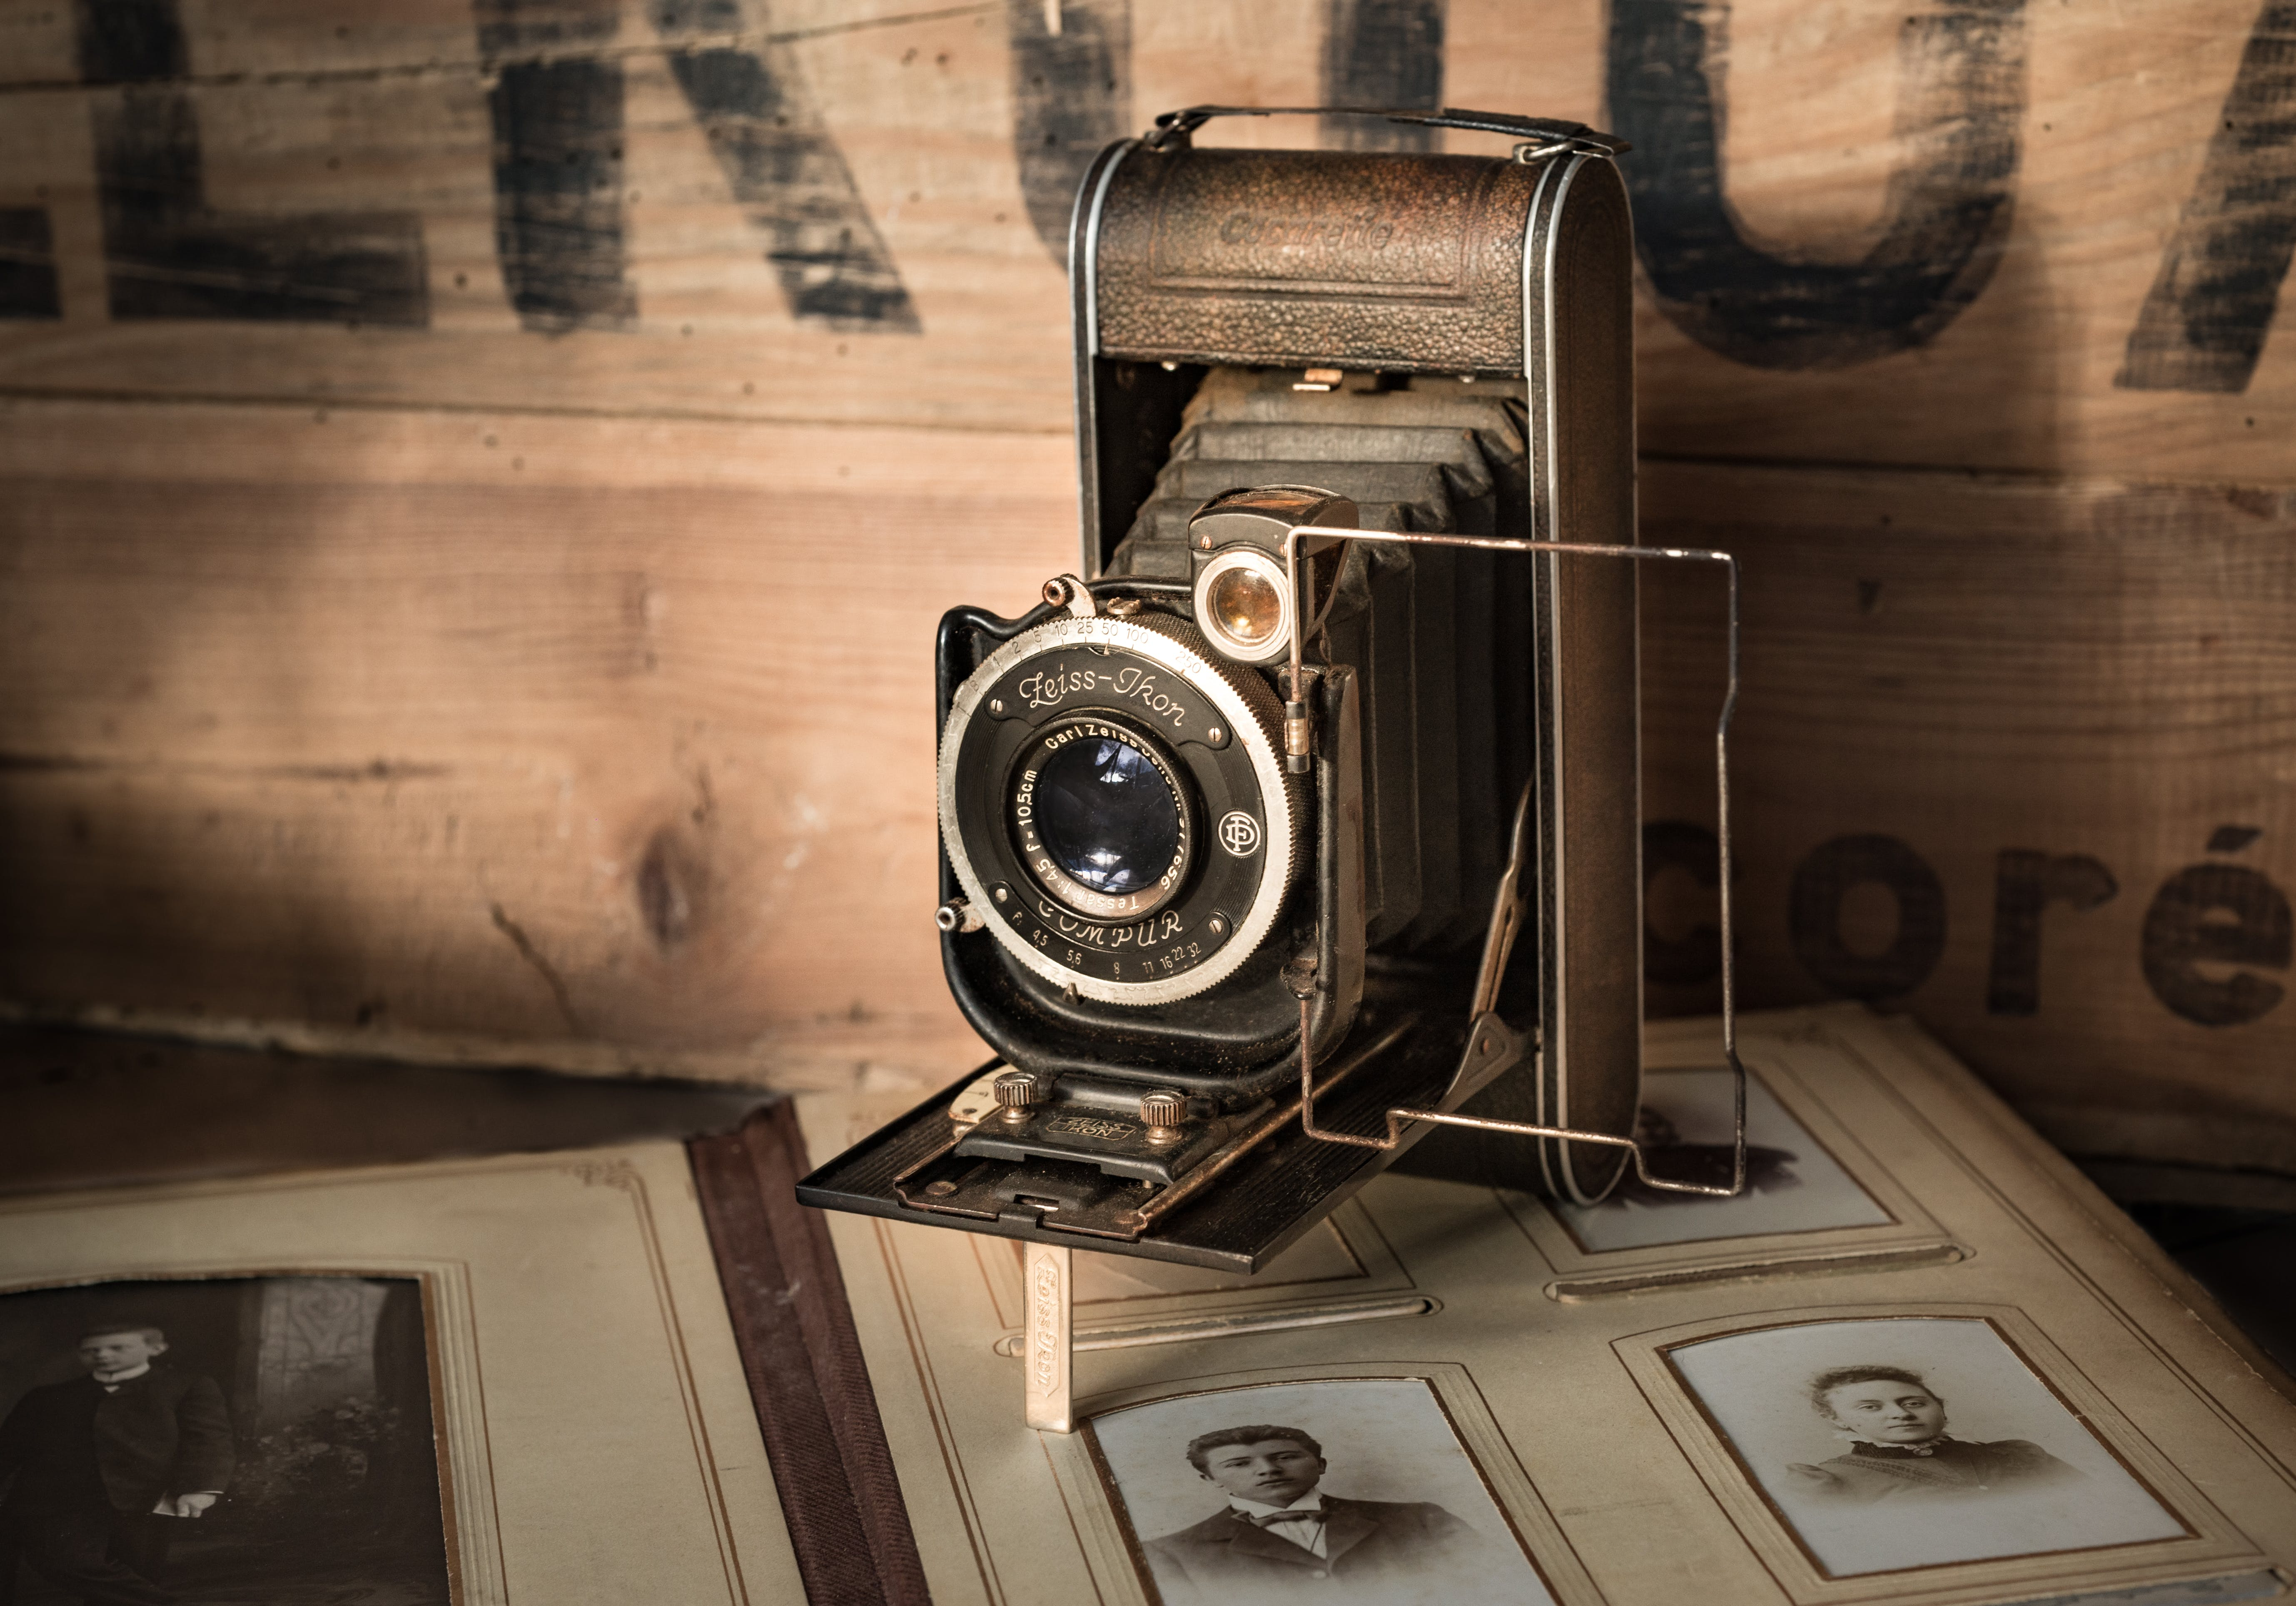 Vintage Black Camera on Brown Surface